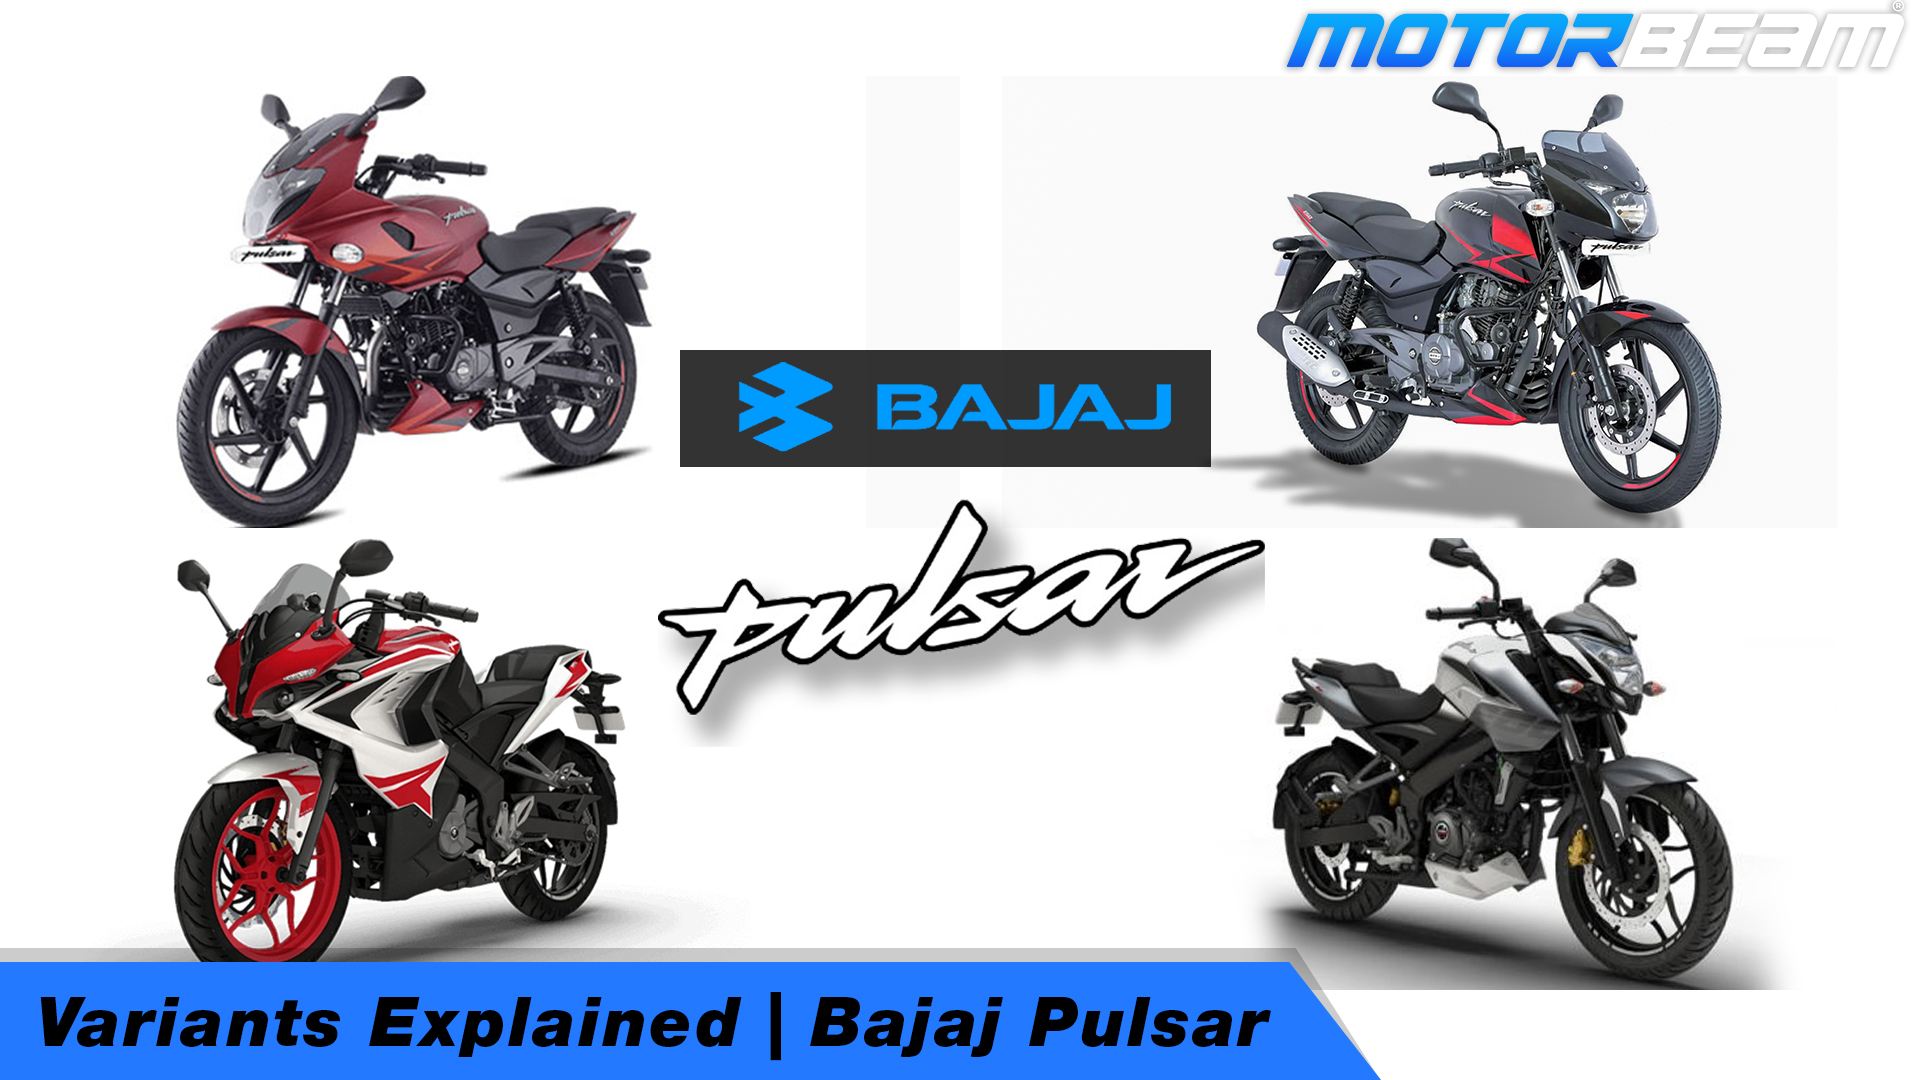 Bajaj Pulsar Variants Explained Video